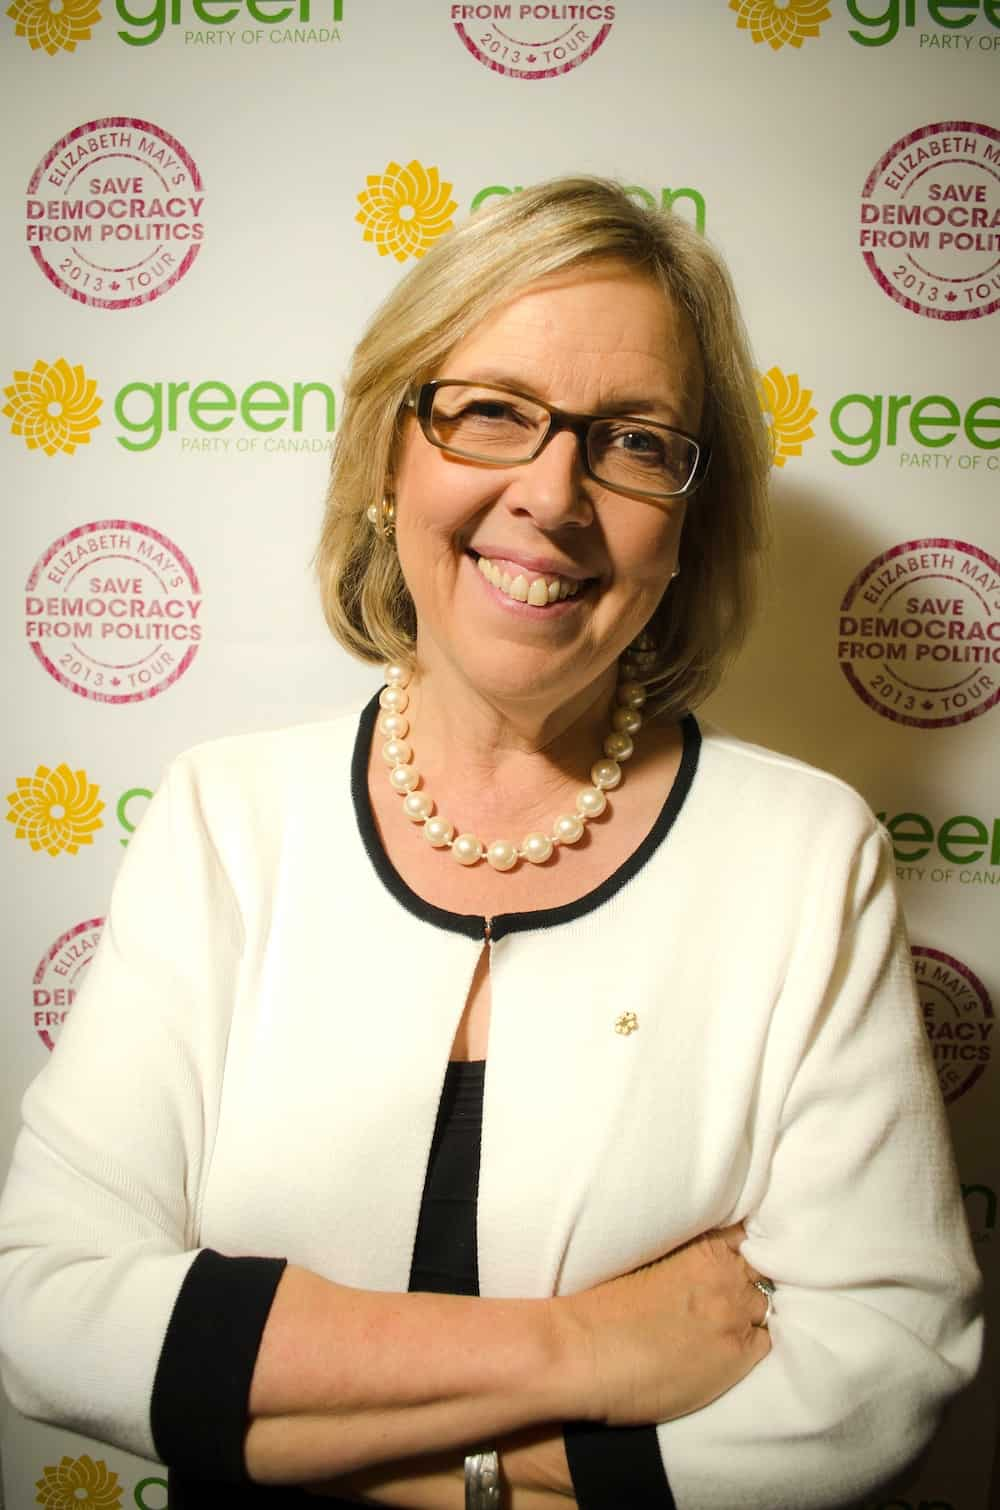 Elizabeth May seeks to reform democracy